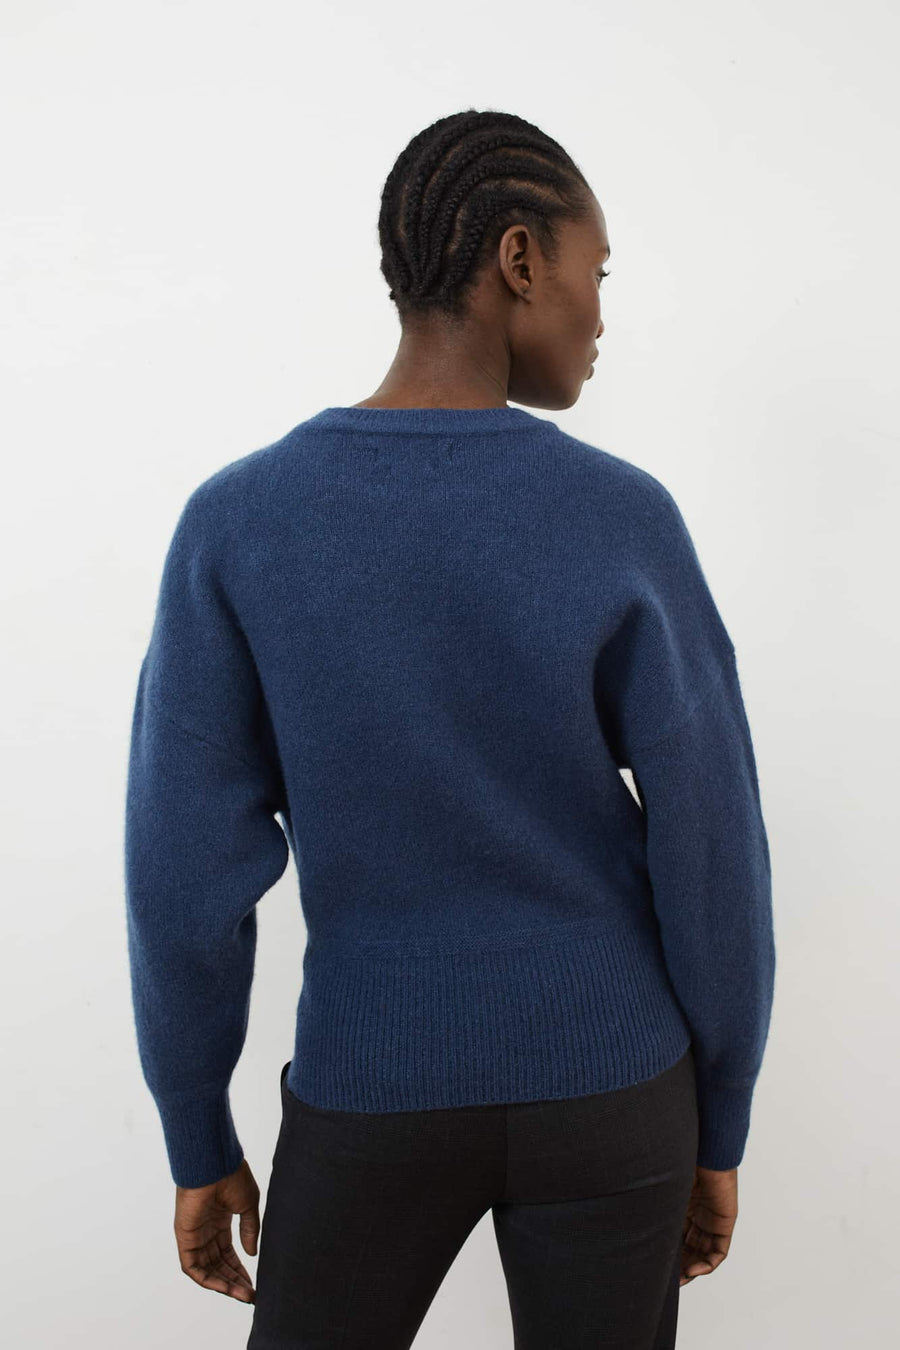 Duffy Sweater-greyish blue